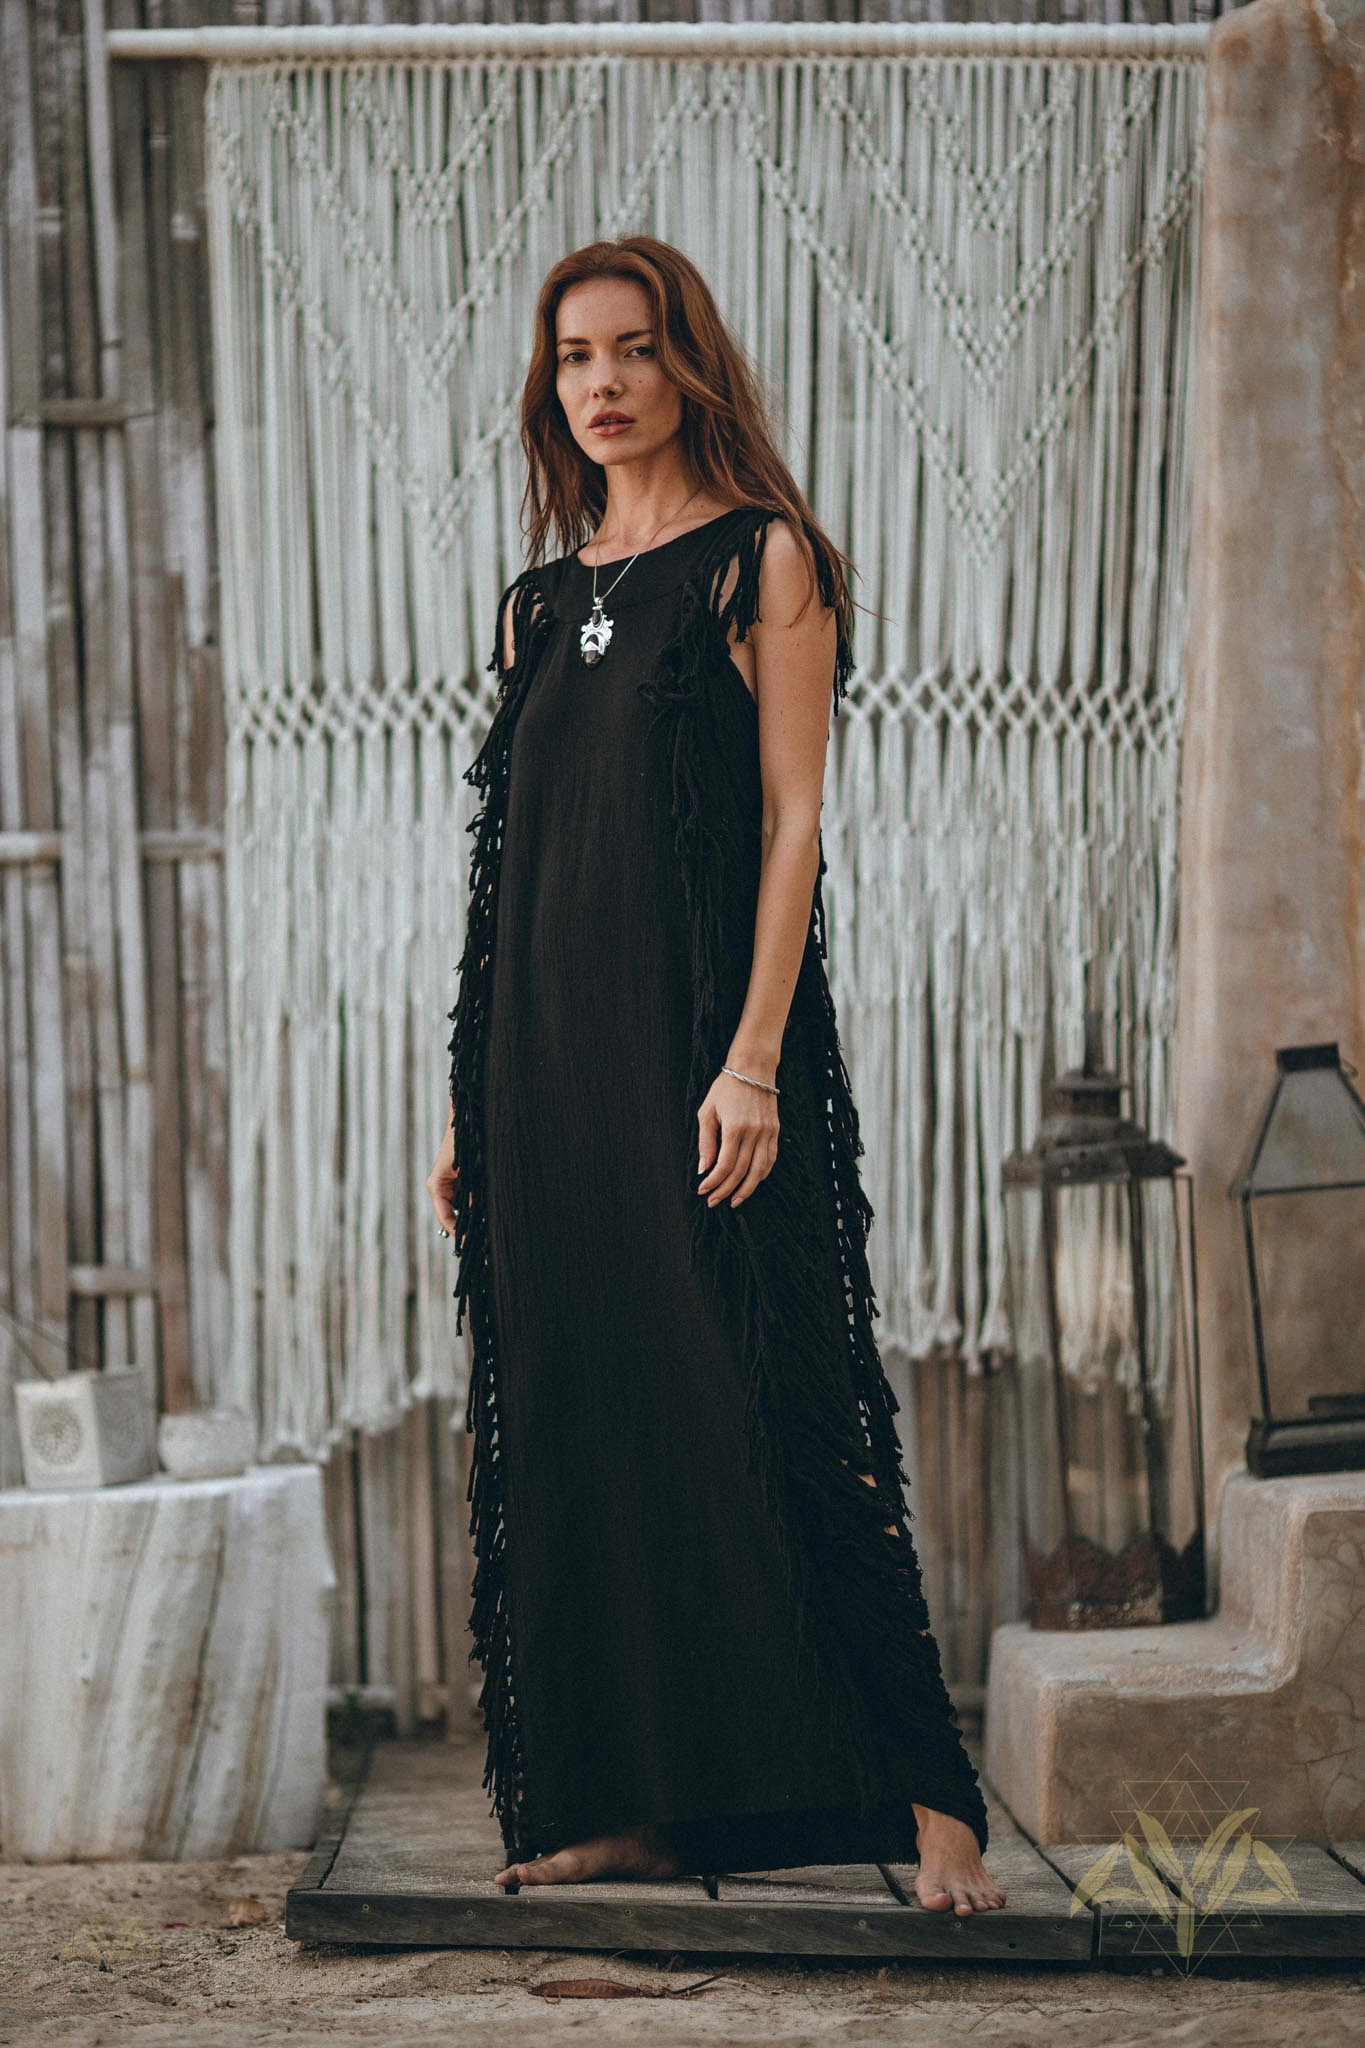 New! Black Boho Dress • Bohemian Dress • Boho Dresses For Women - aya.eco